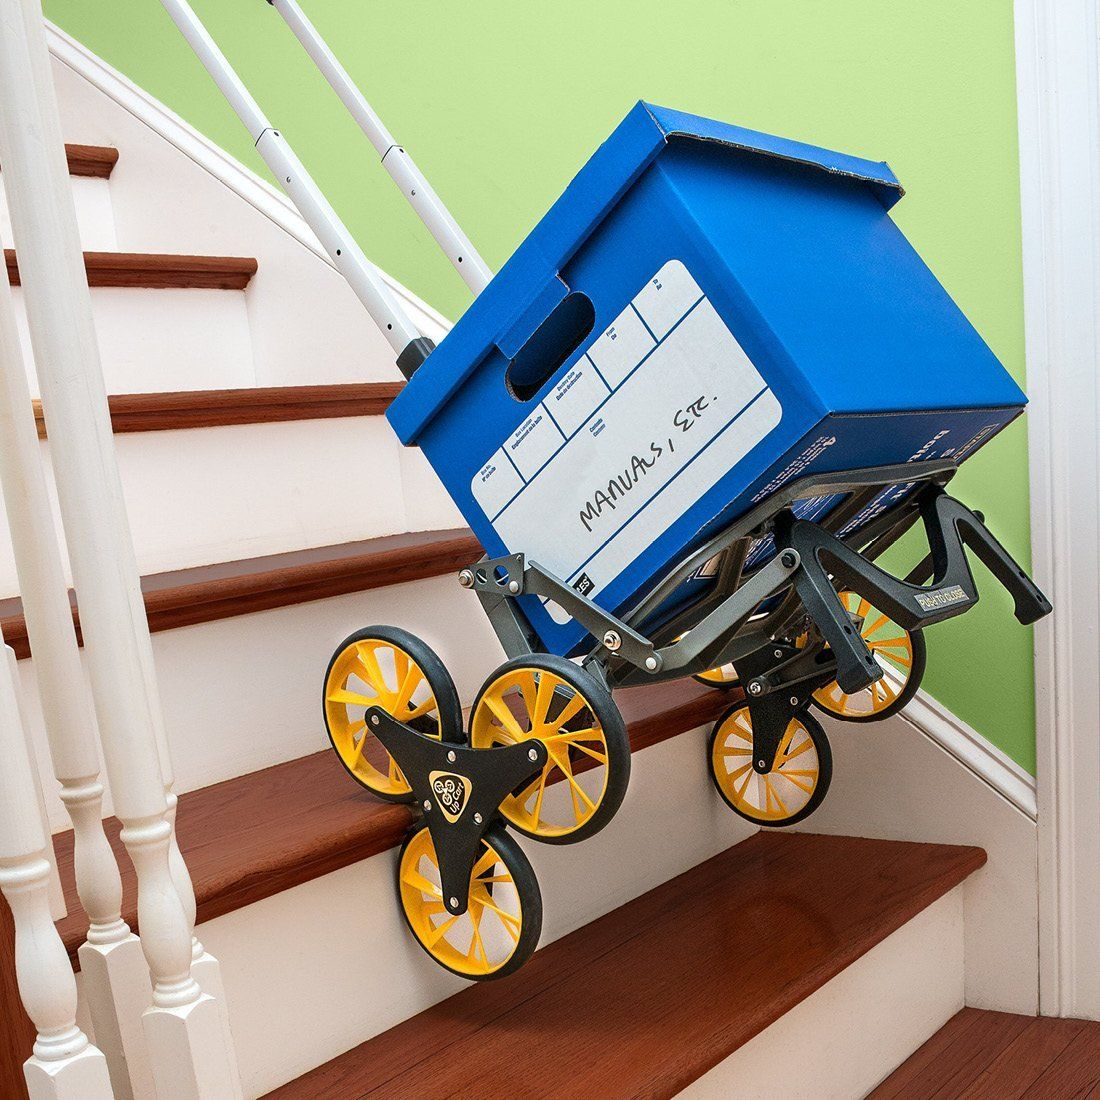 UpCart is a easy to use stair climbing trolley that is